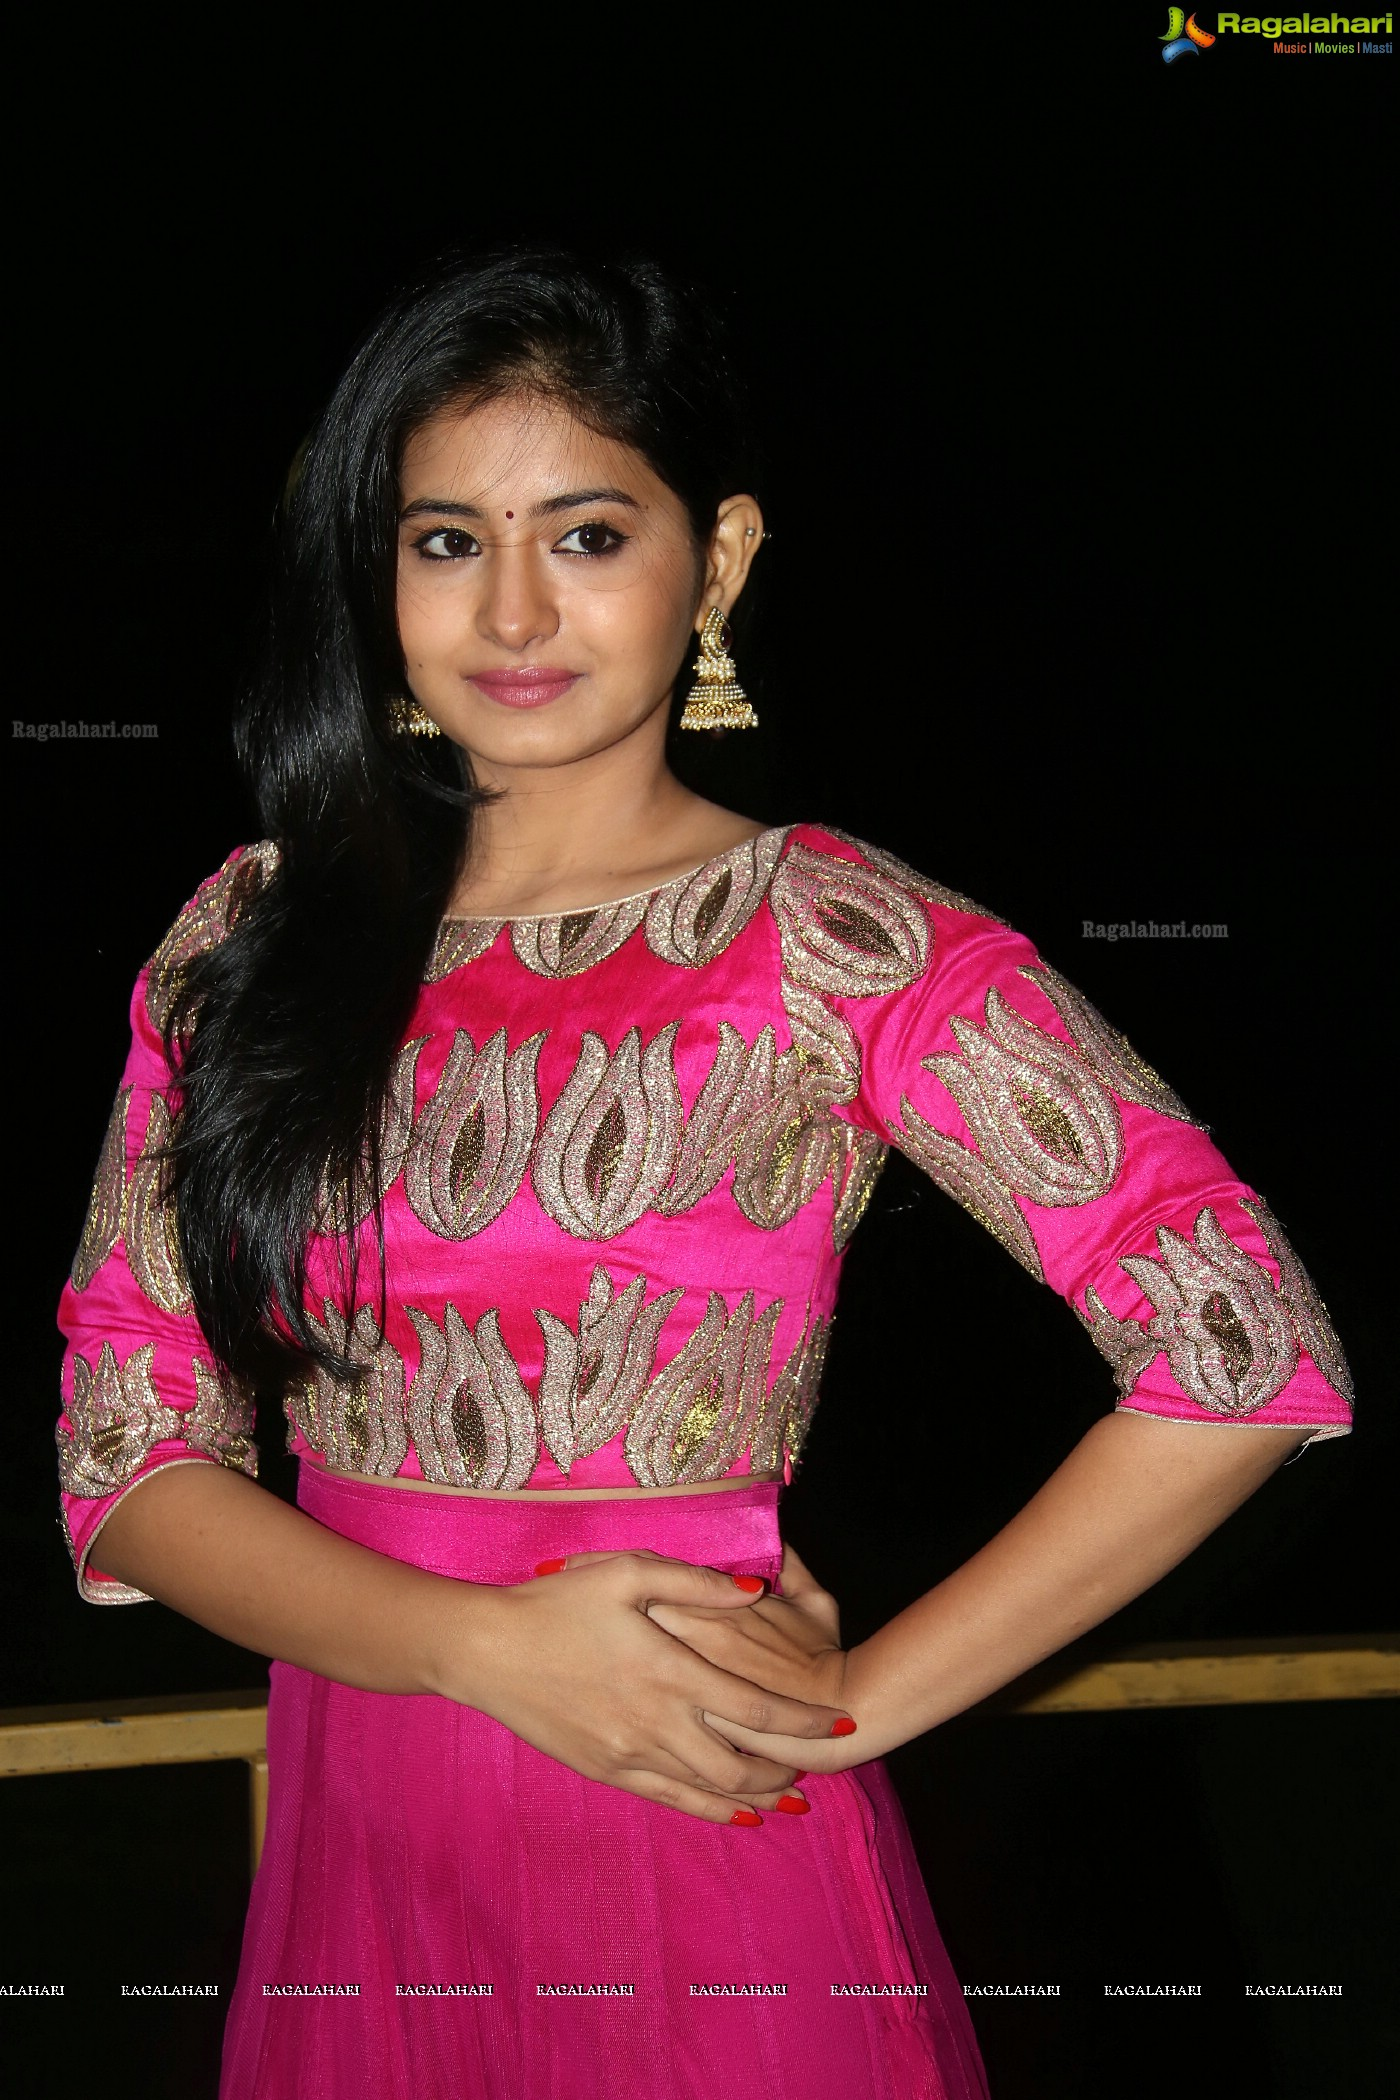 Reshmi Menon Posters Image 35 Tollywood Actress Imagesimages